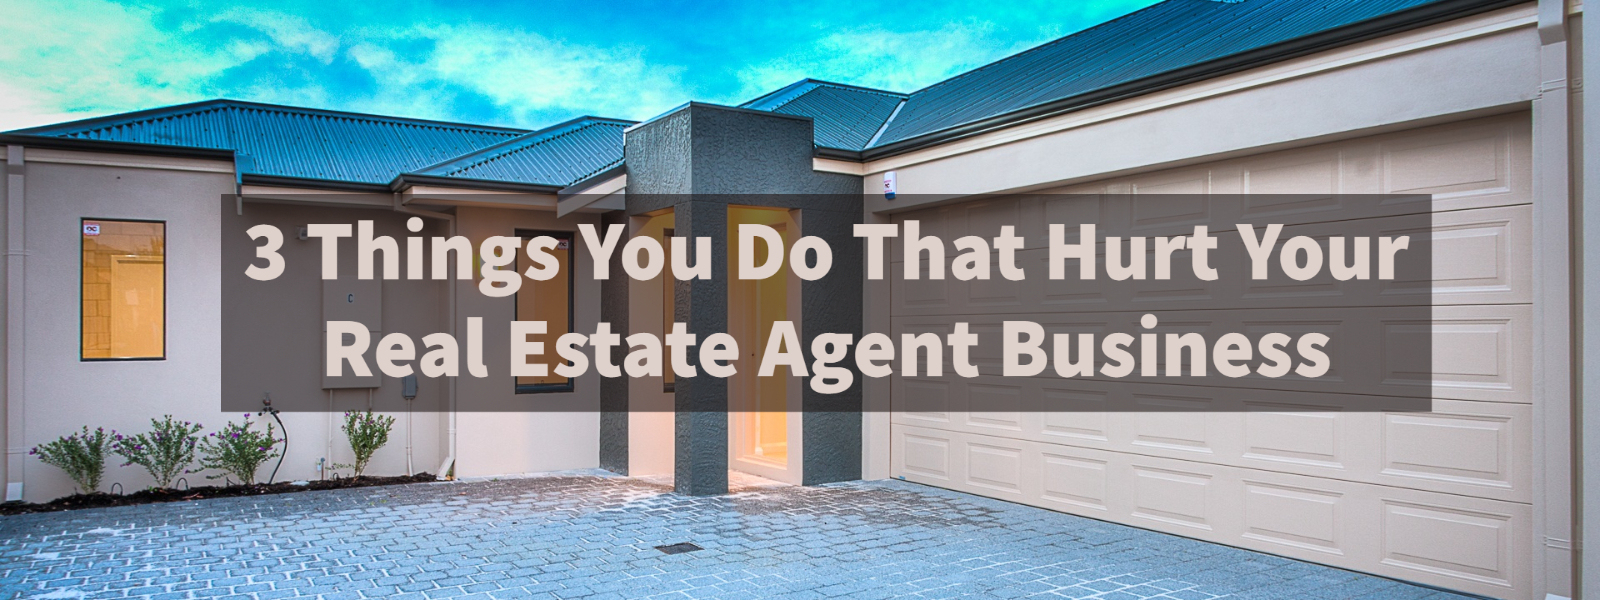 3 Things You Do That Hurt Your Real Estate Agent Business